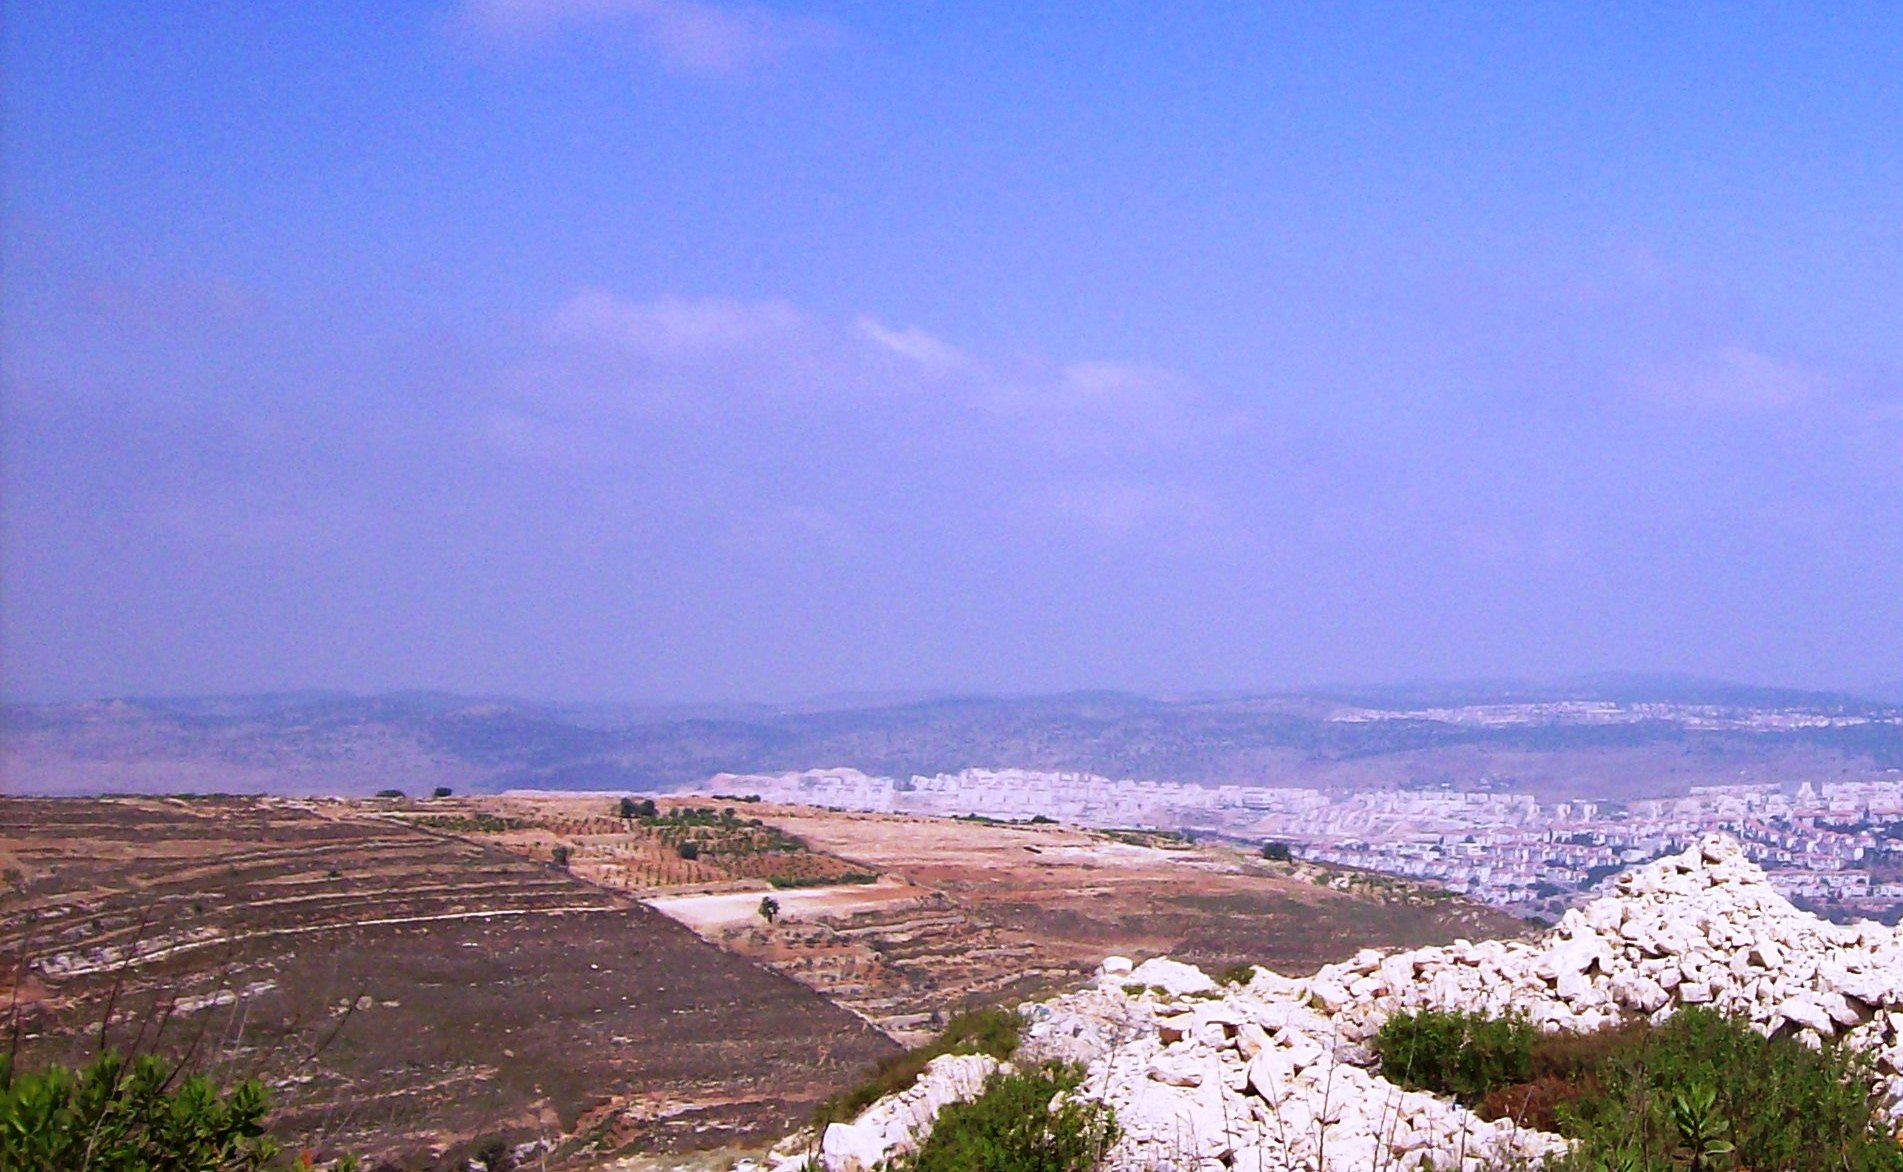 Hebron - the fertile land given to Abraham